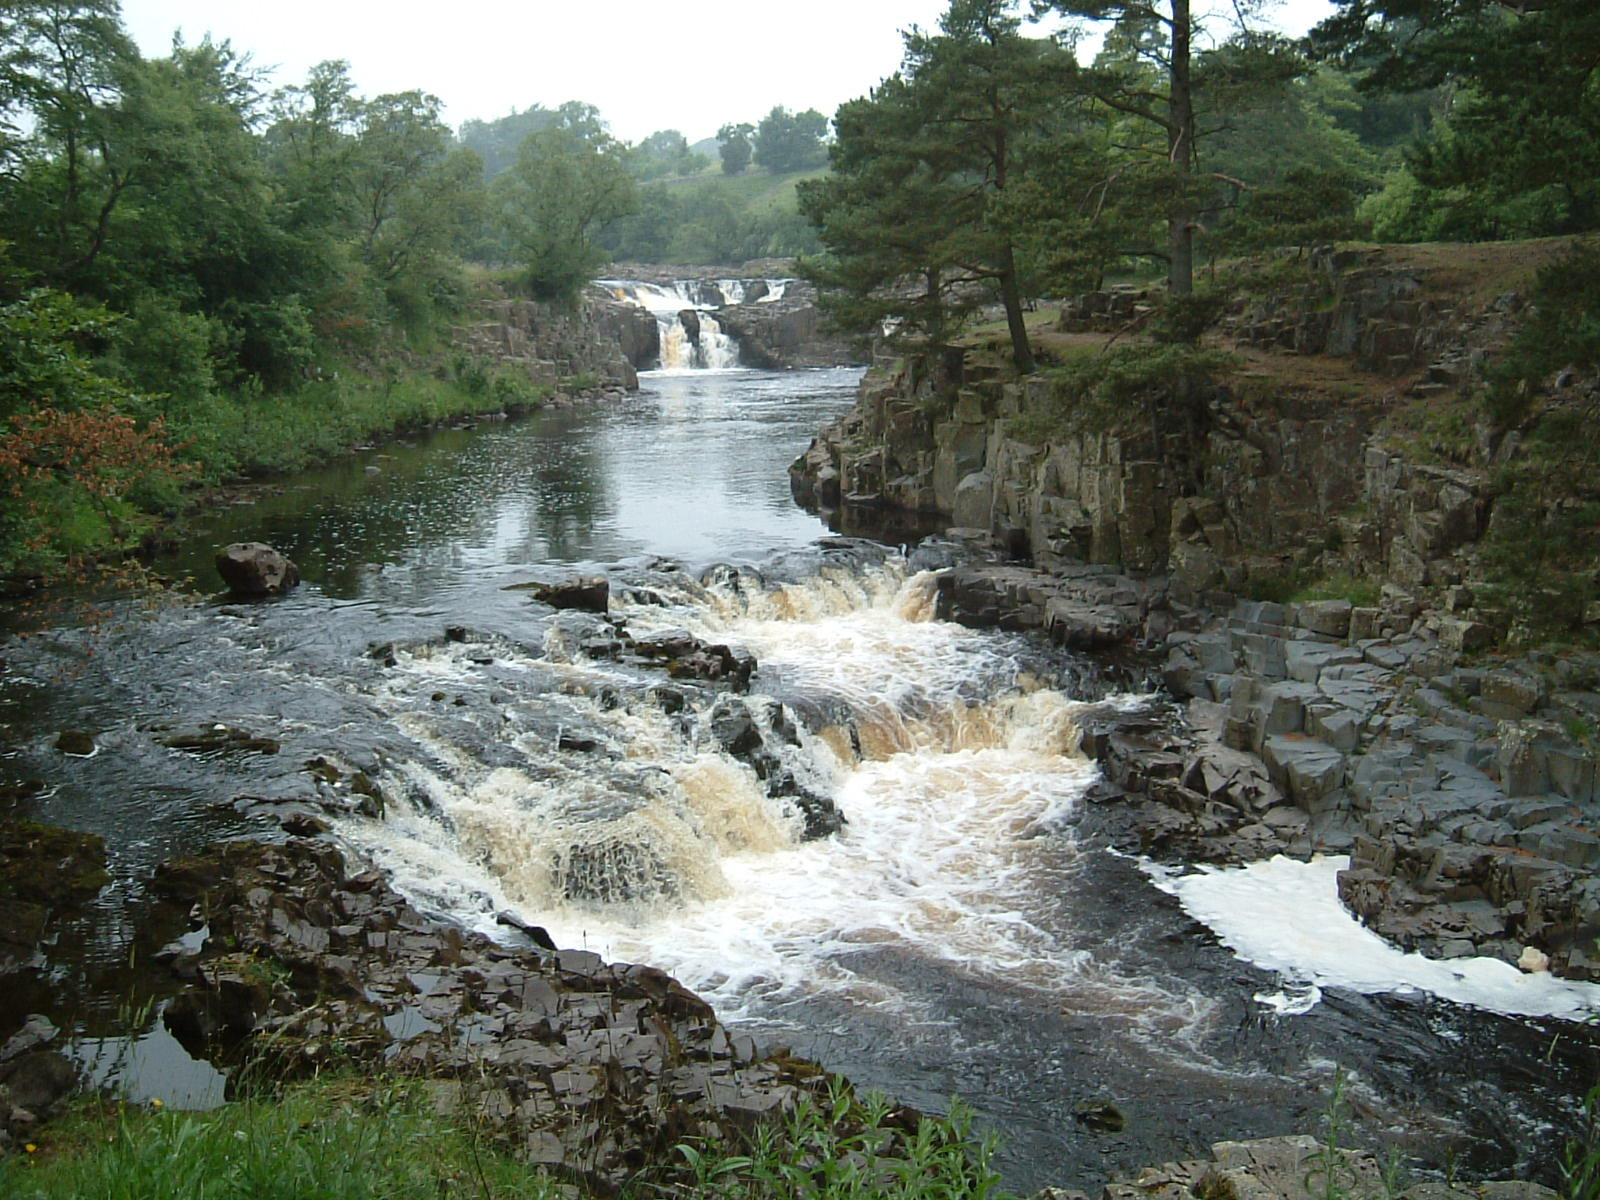 Low Force on the River Tees